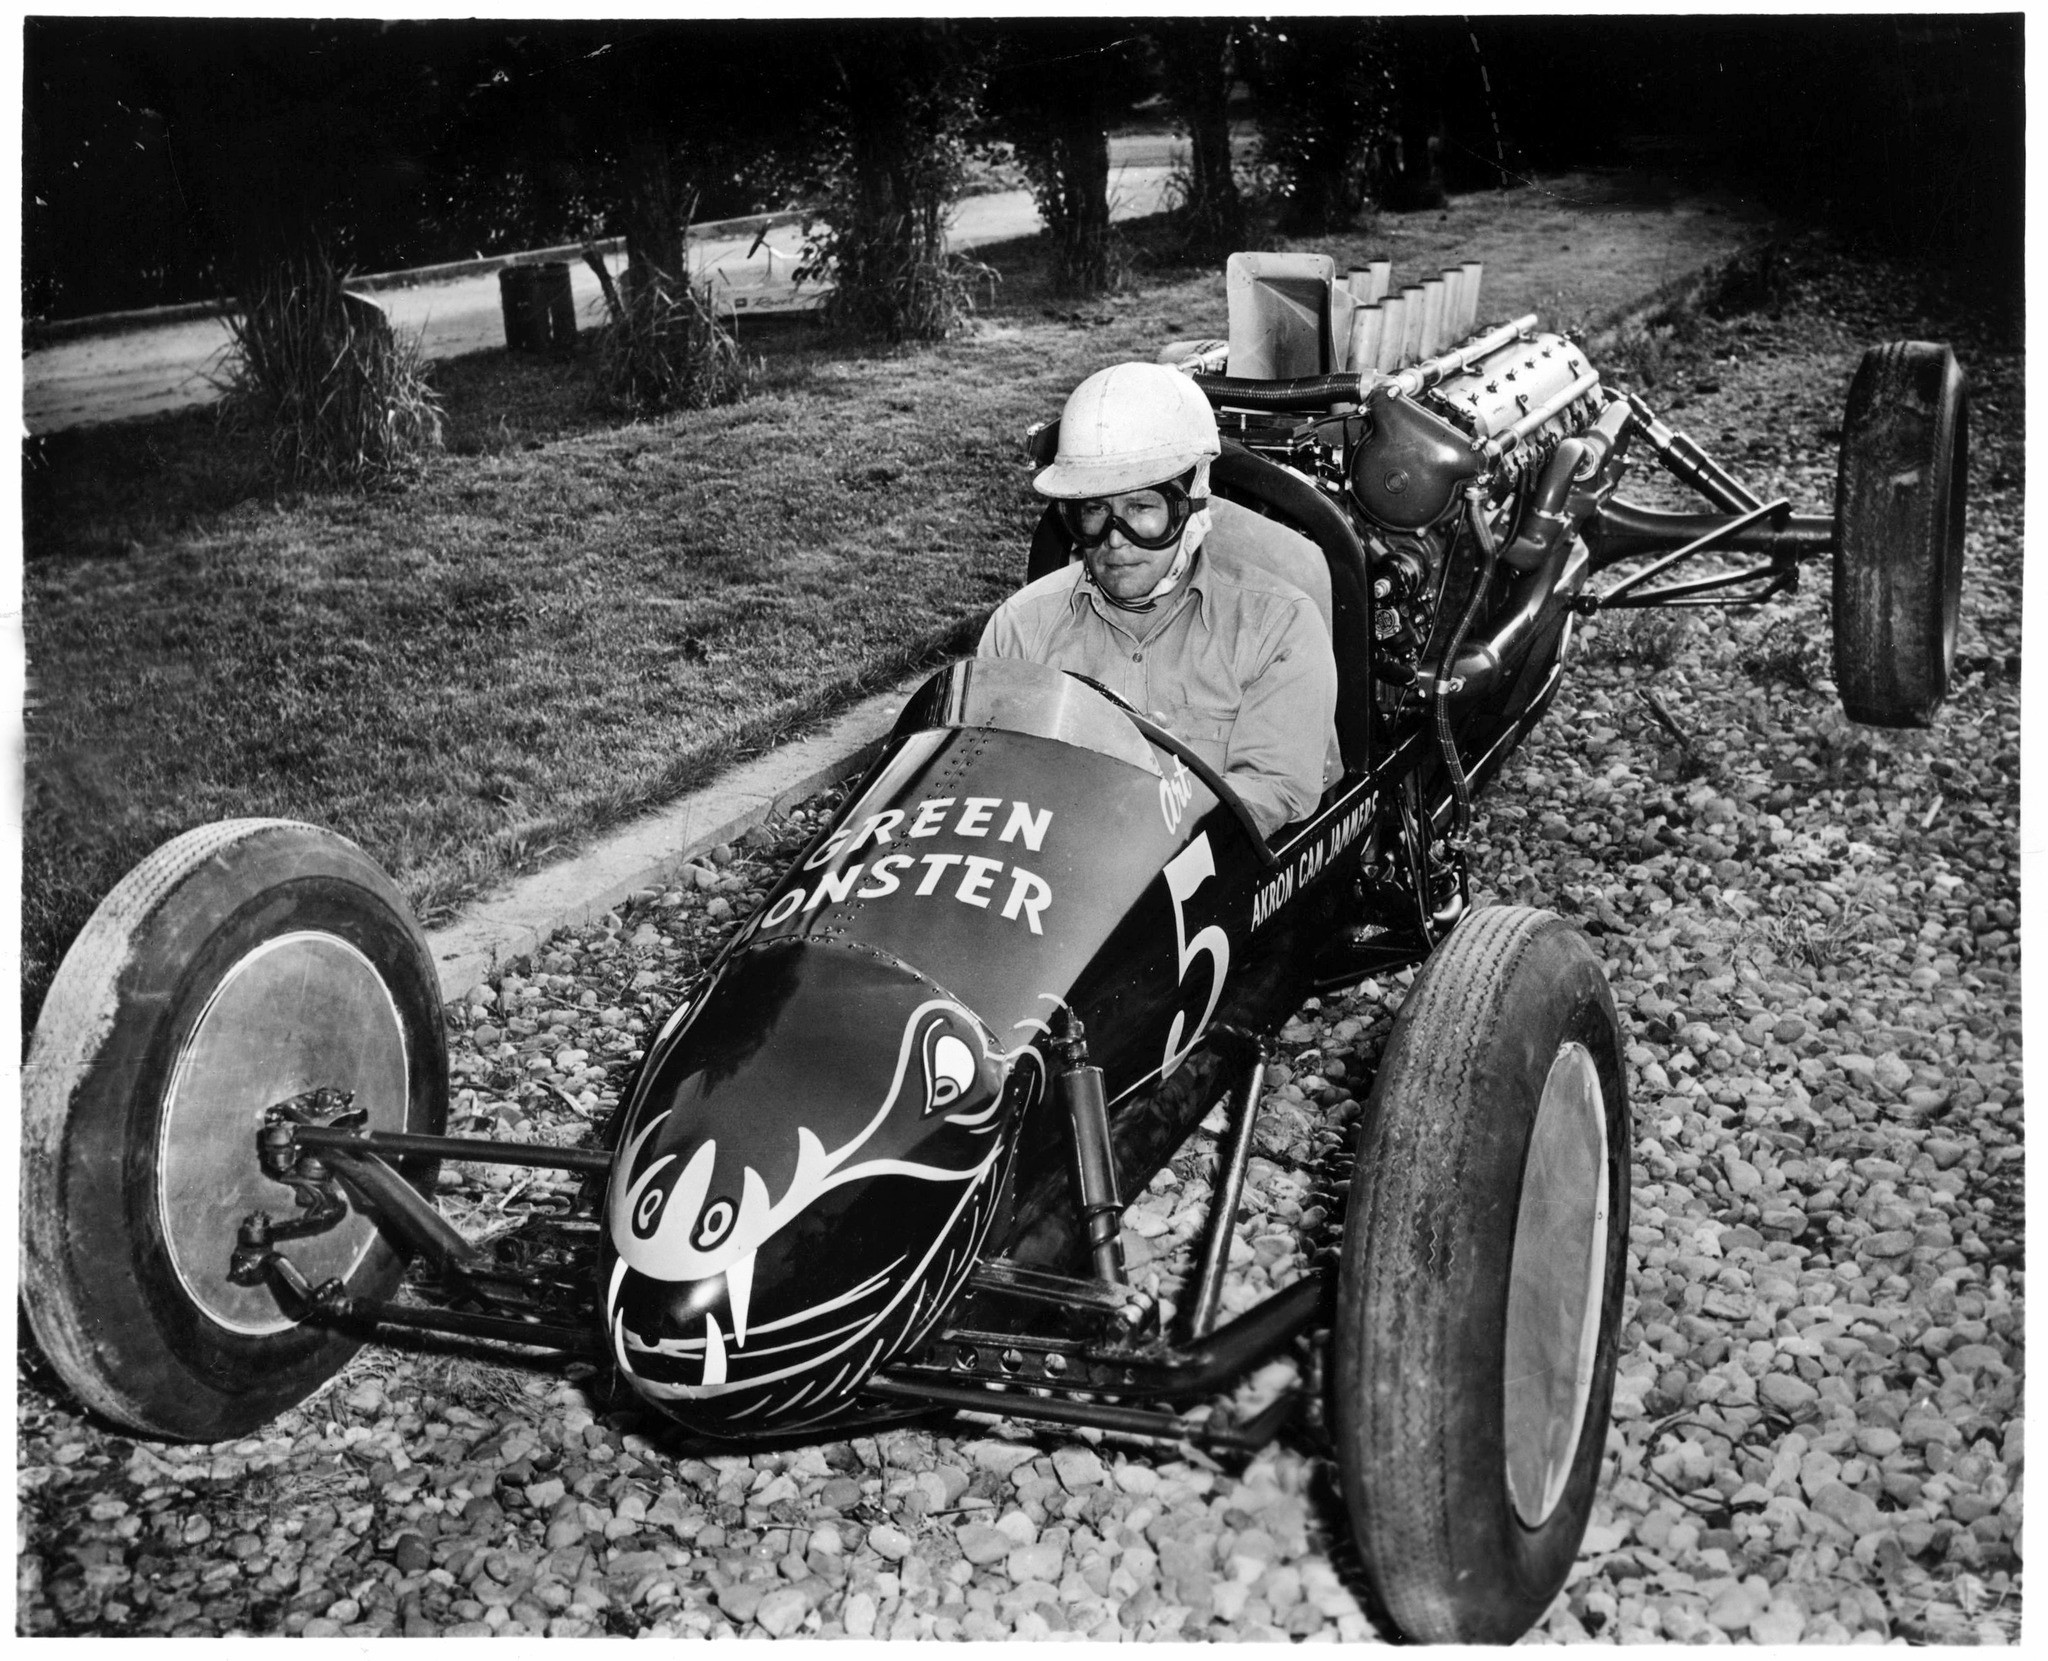 Walt Arfons named several of his dragsters Green Monster.